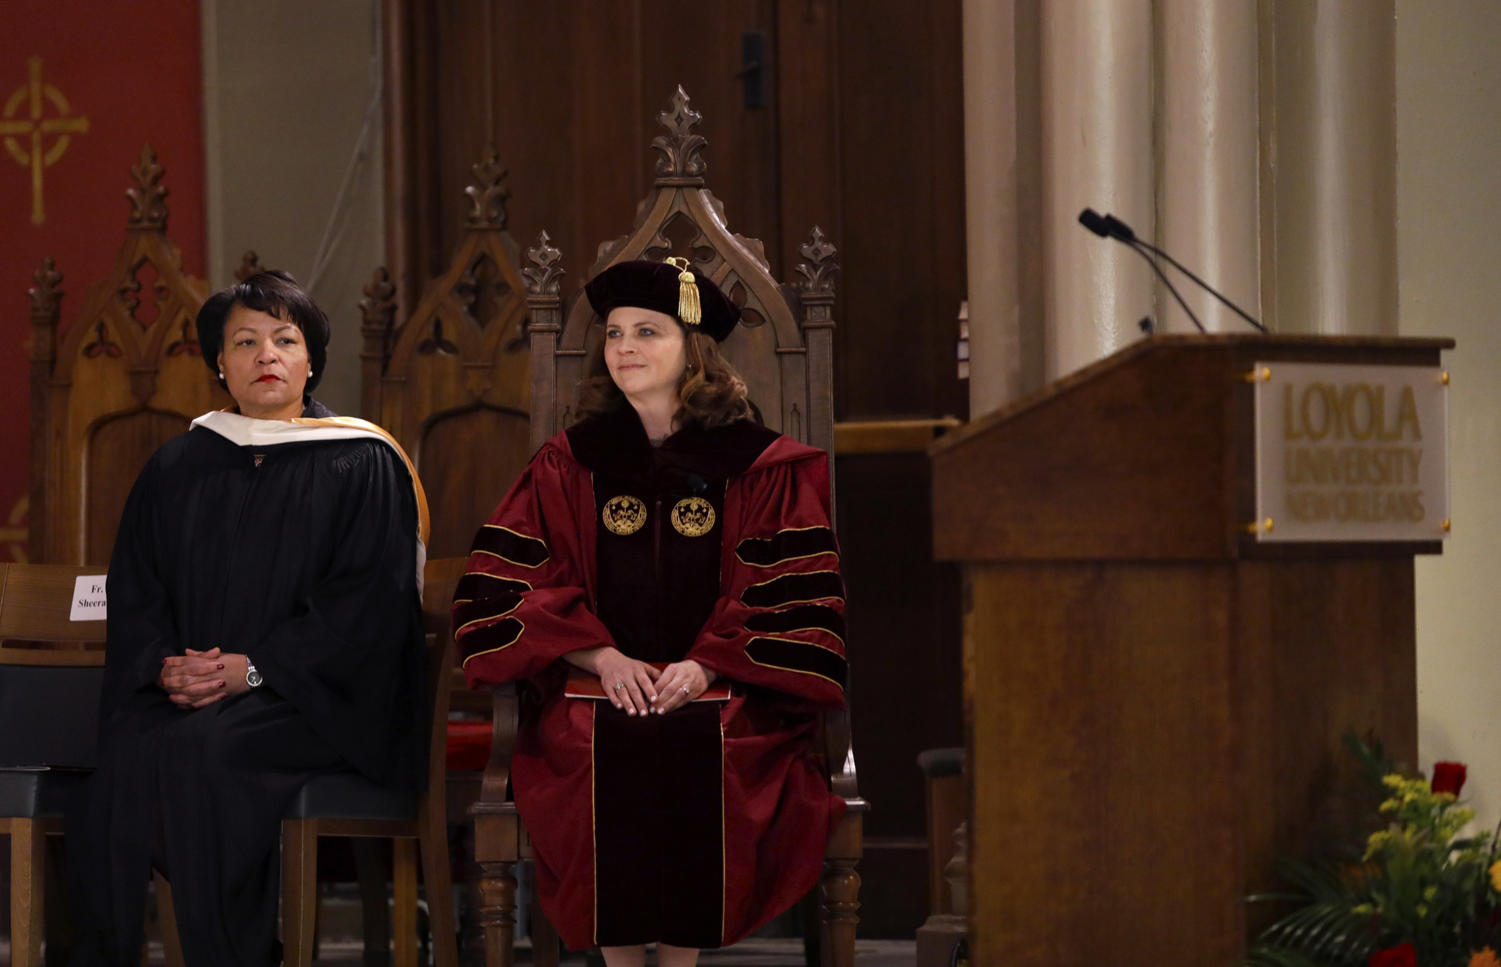 University President Tania Tetlow and New Orleans Mayor LaToya Cantrell sit together during Tetlow's inauguration last fall. Tetlow was in charge of recruiting speakers for the upcoming Women's Leadership Academy -- one of whom will be Cantrell. Photo credit: Angelo Imbraguglio